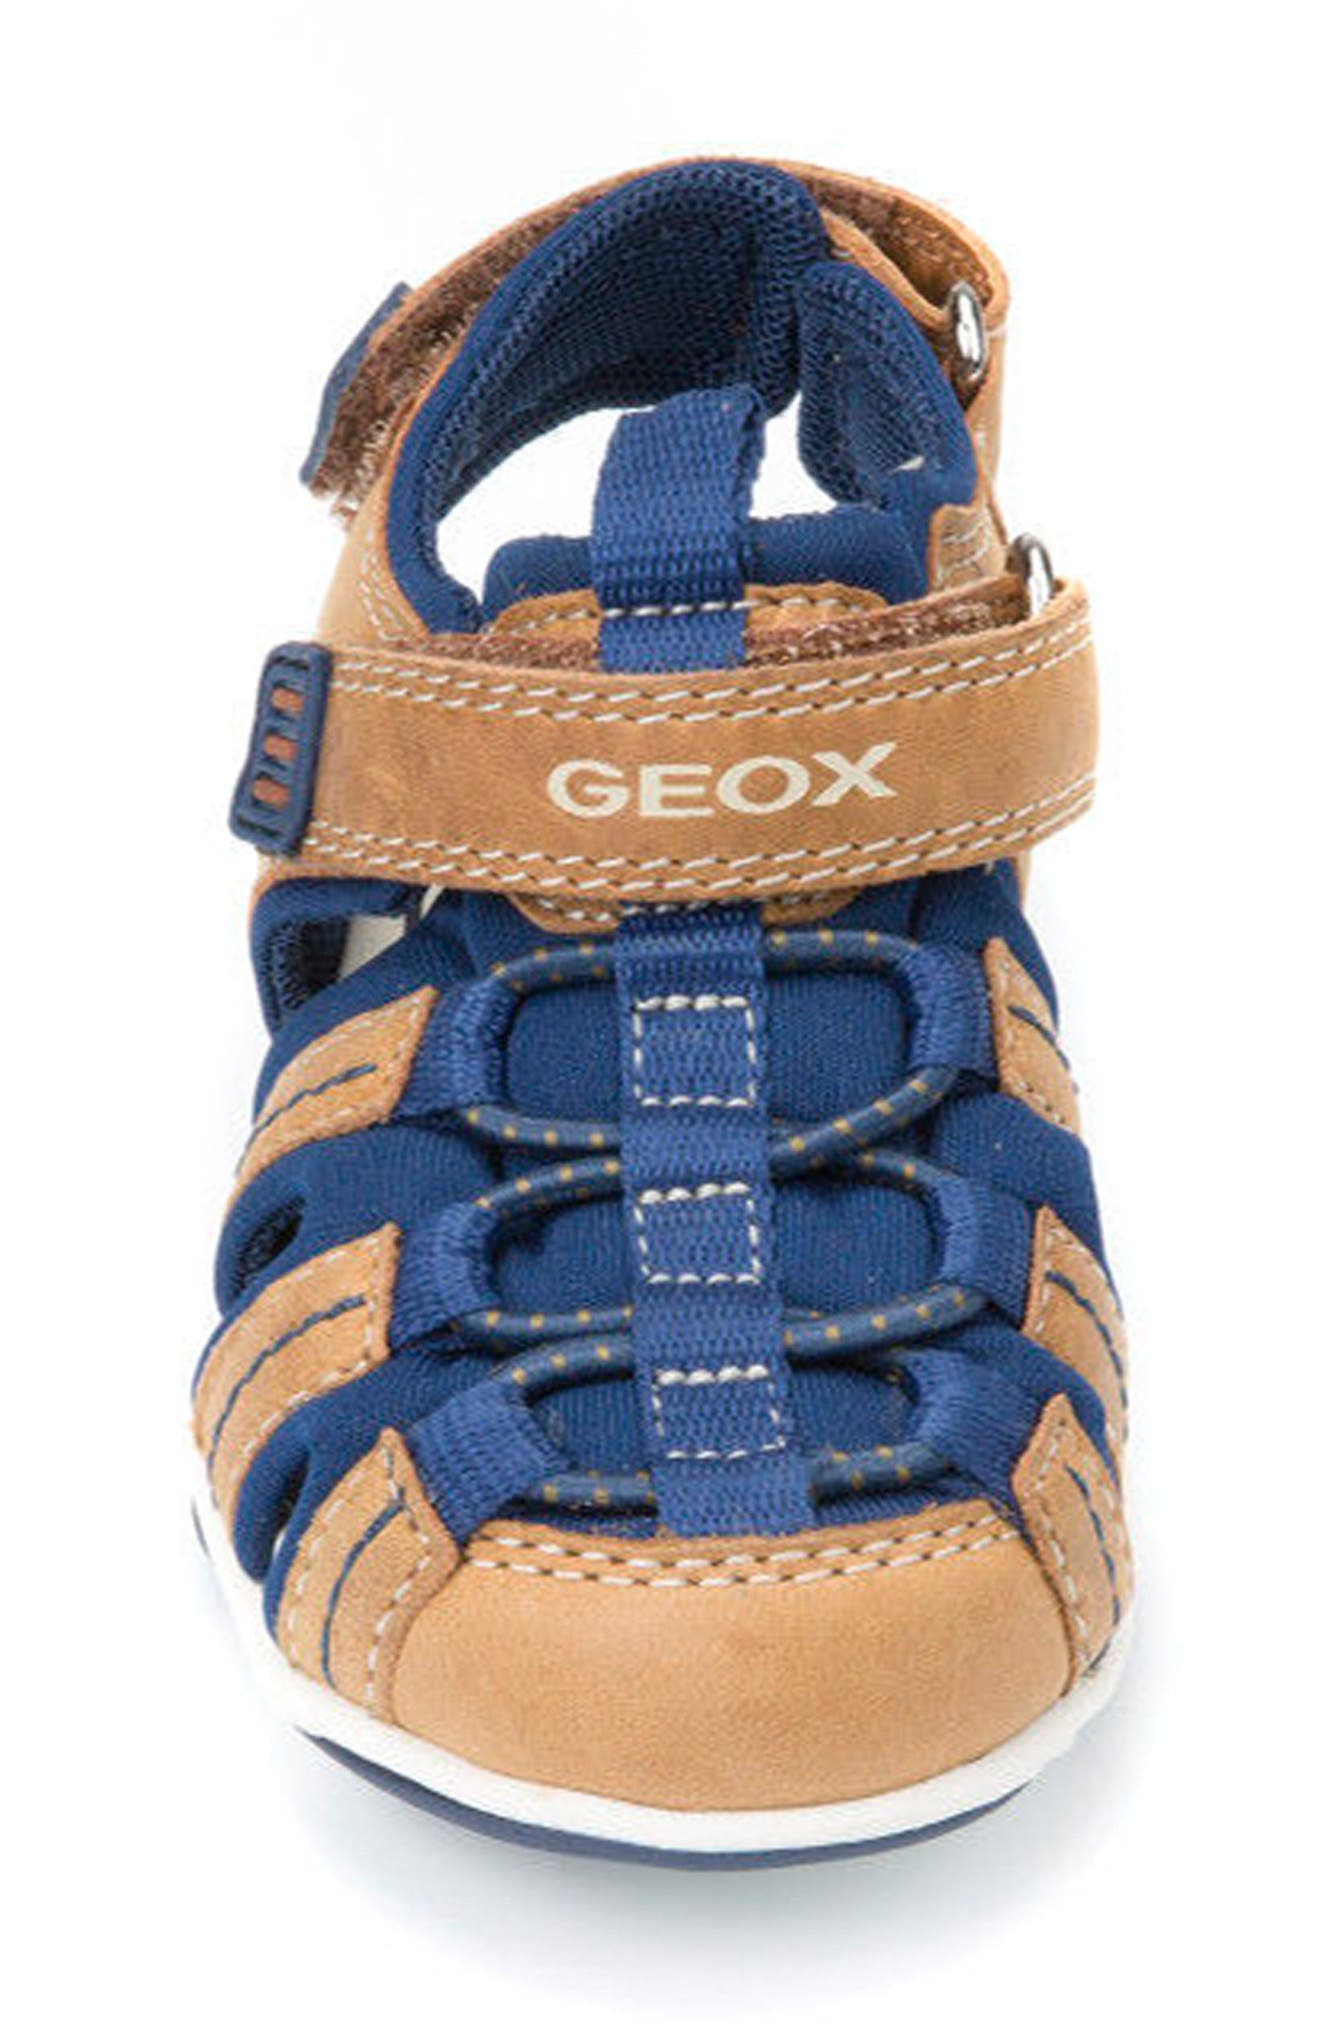 Agasim Fisherman Sandal,                             Alternate thumbnail 4, color,                             Caramel/ Navy